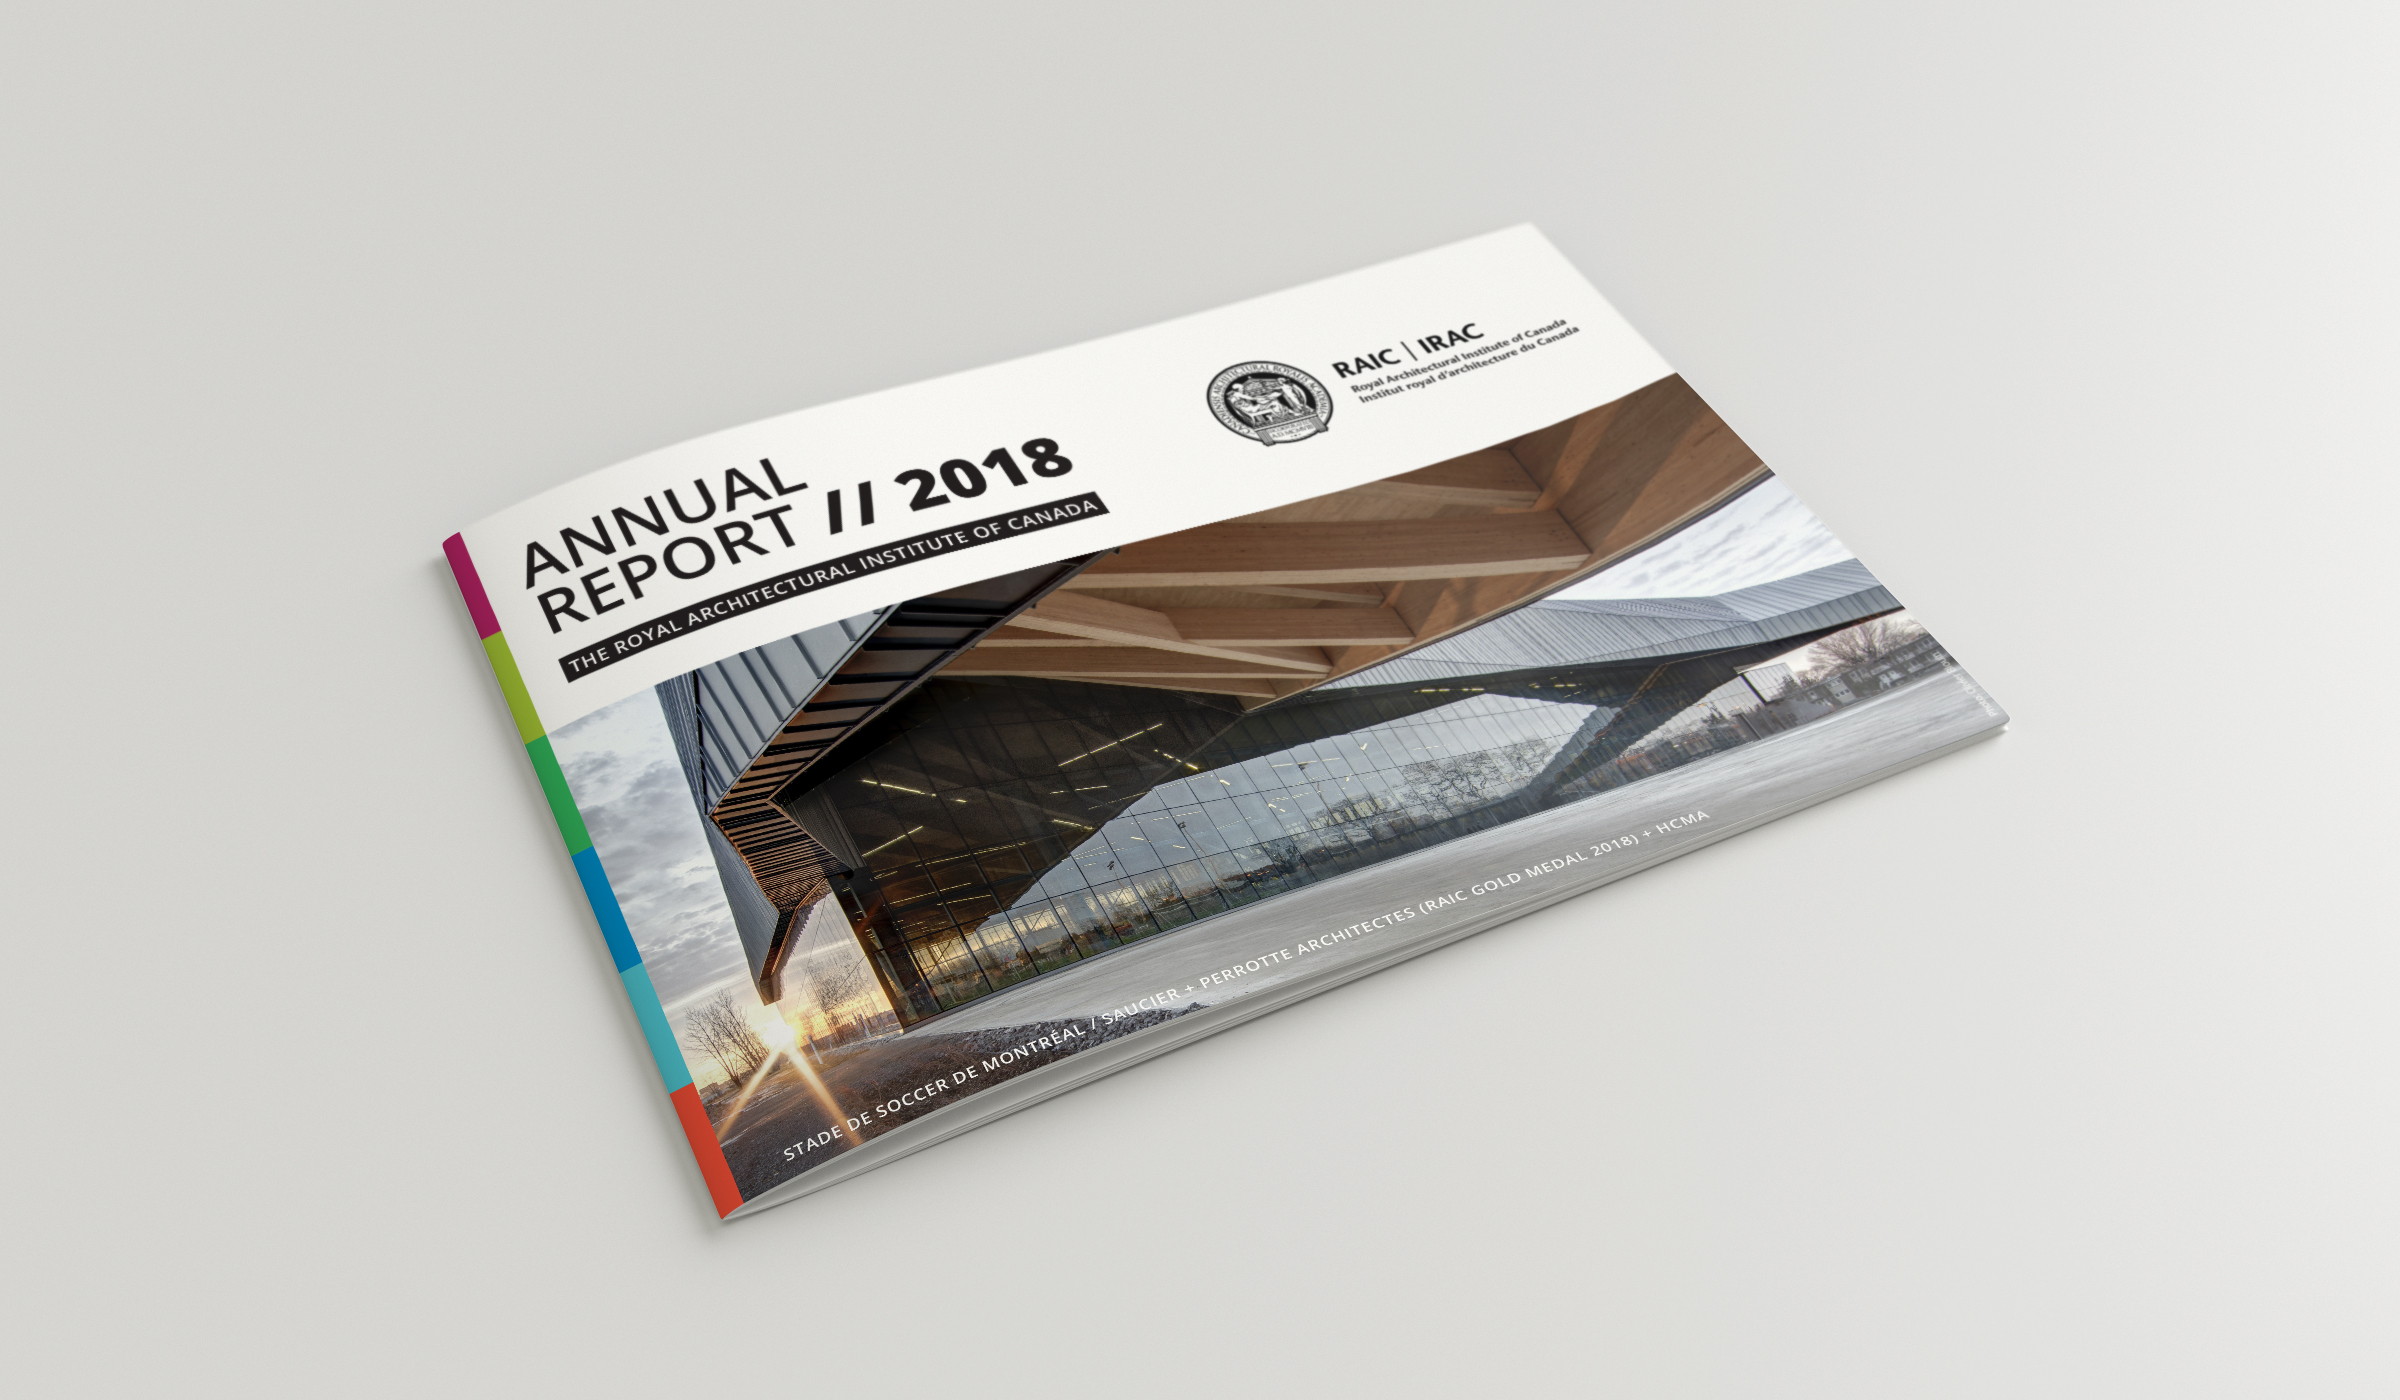 RAIC Annual Report 2018 Cover